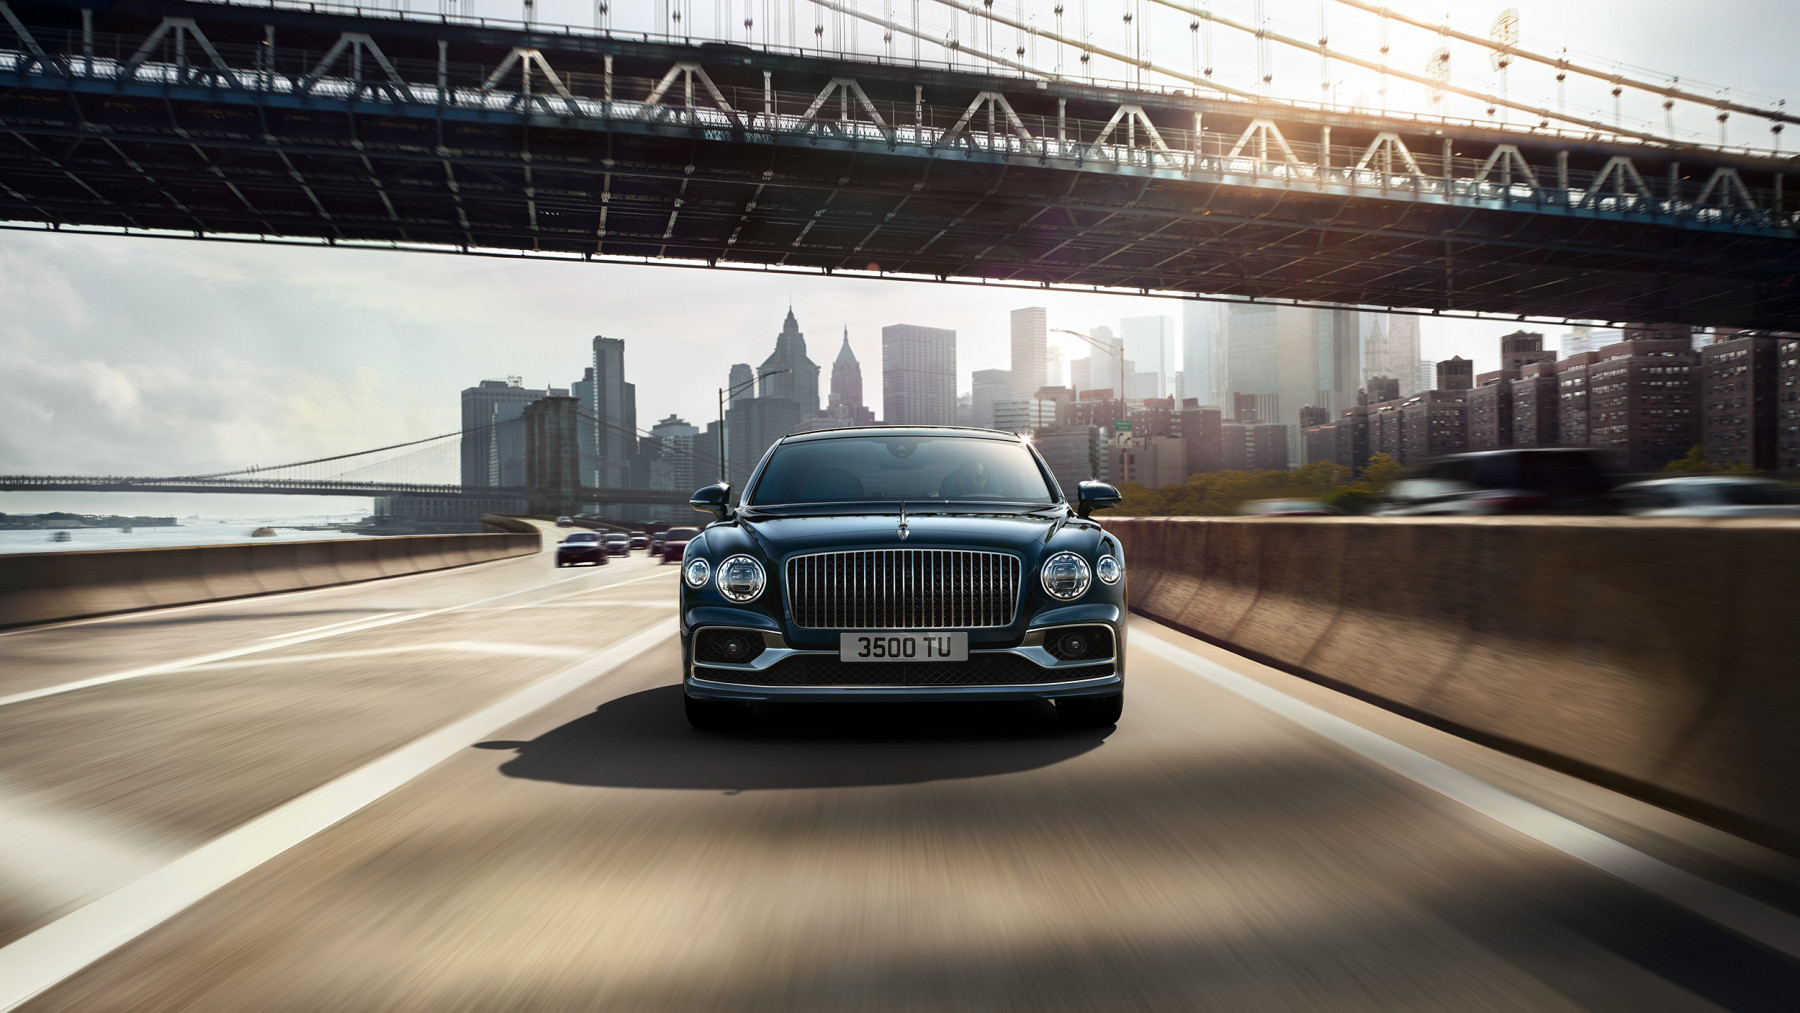 The new Bentley Flying Spur 4